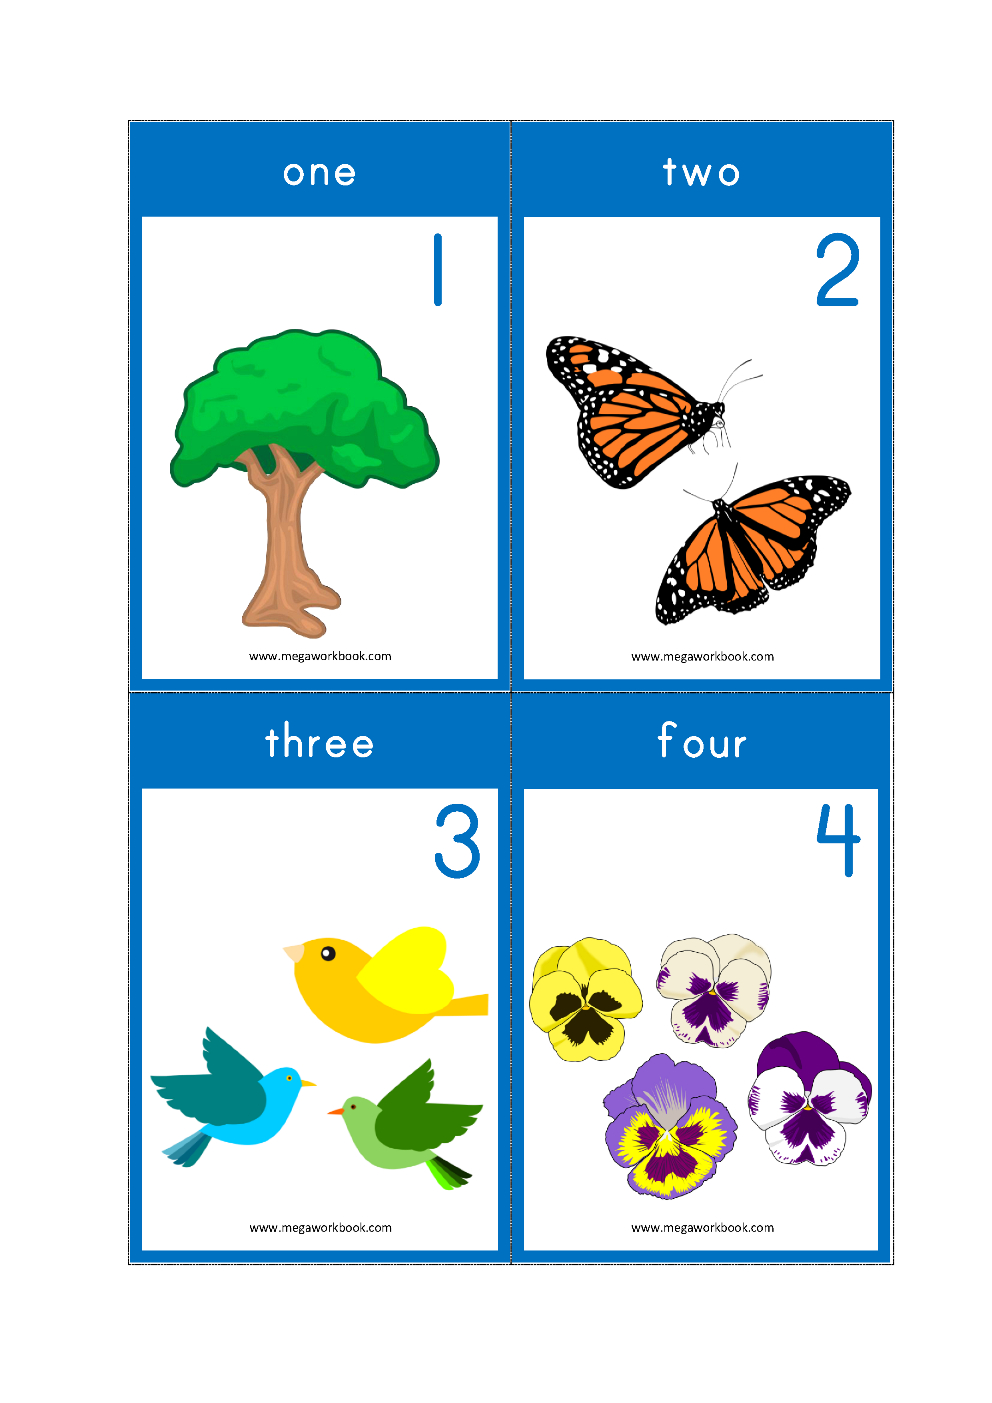 Free Printable Number Flashcards - Counting Flashcards 1-10 For Kids - Free Printable Number Flashcards 1 30